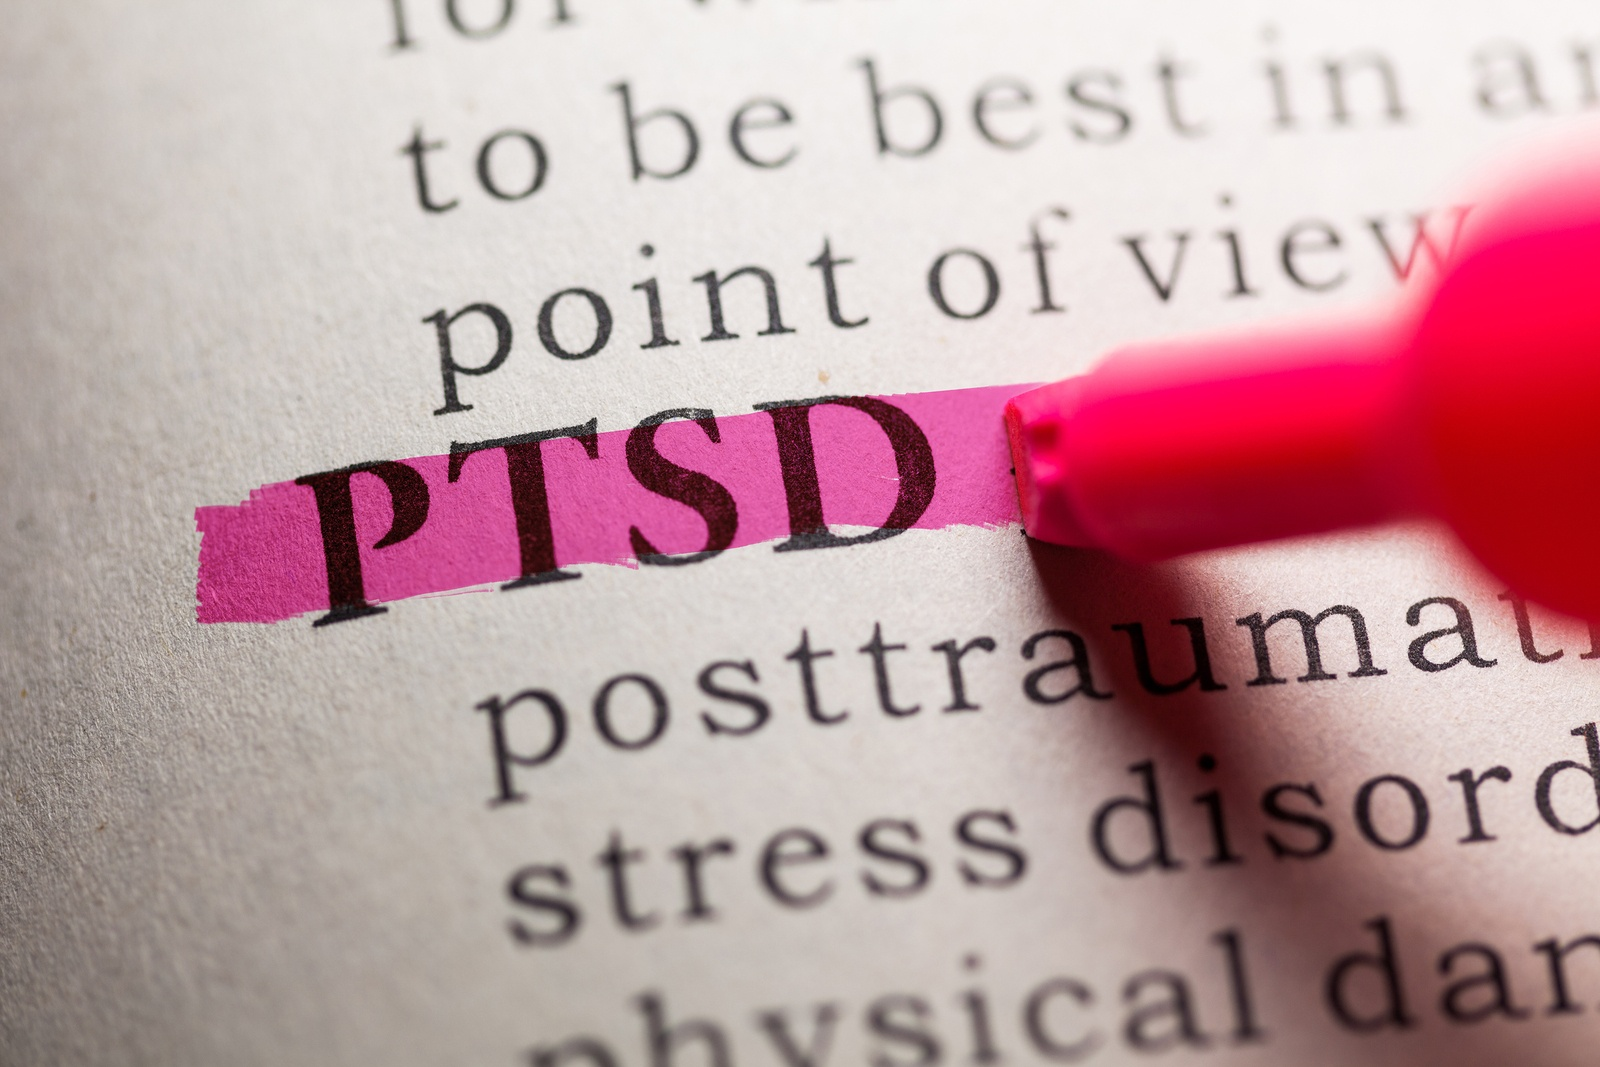 post-traumatic stress disorder: how to deal with ptsd